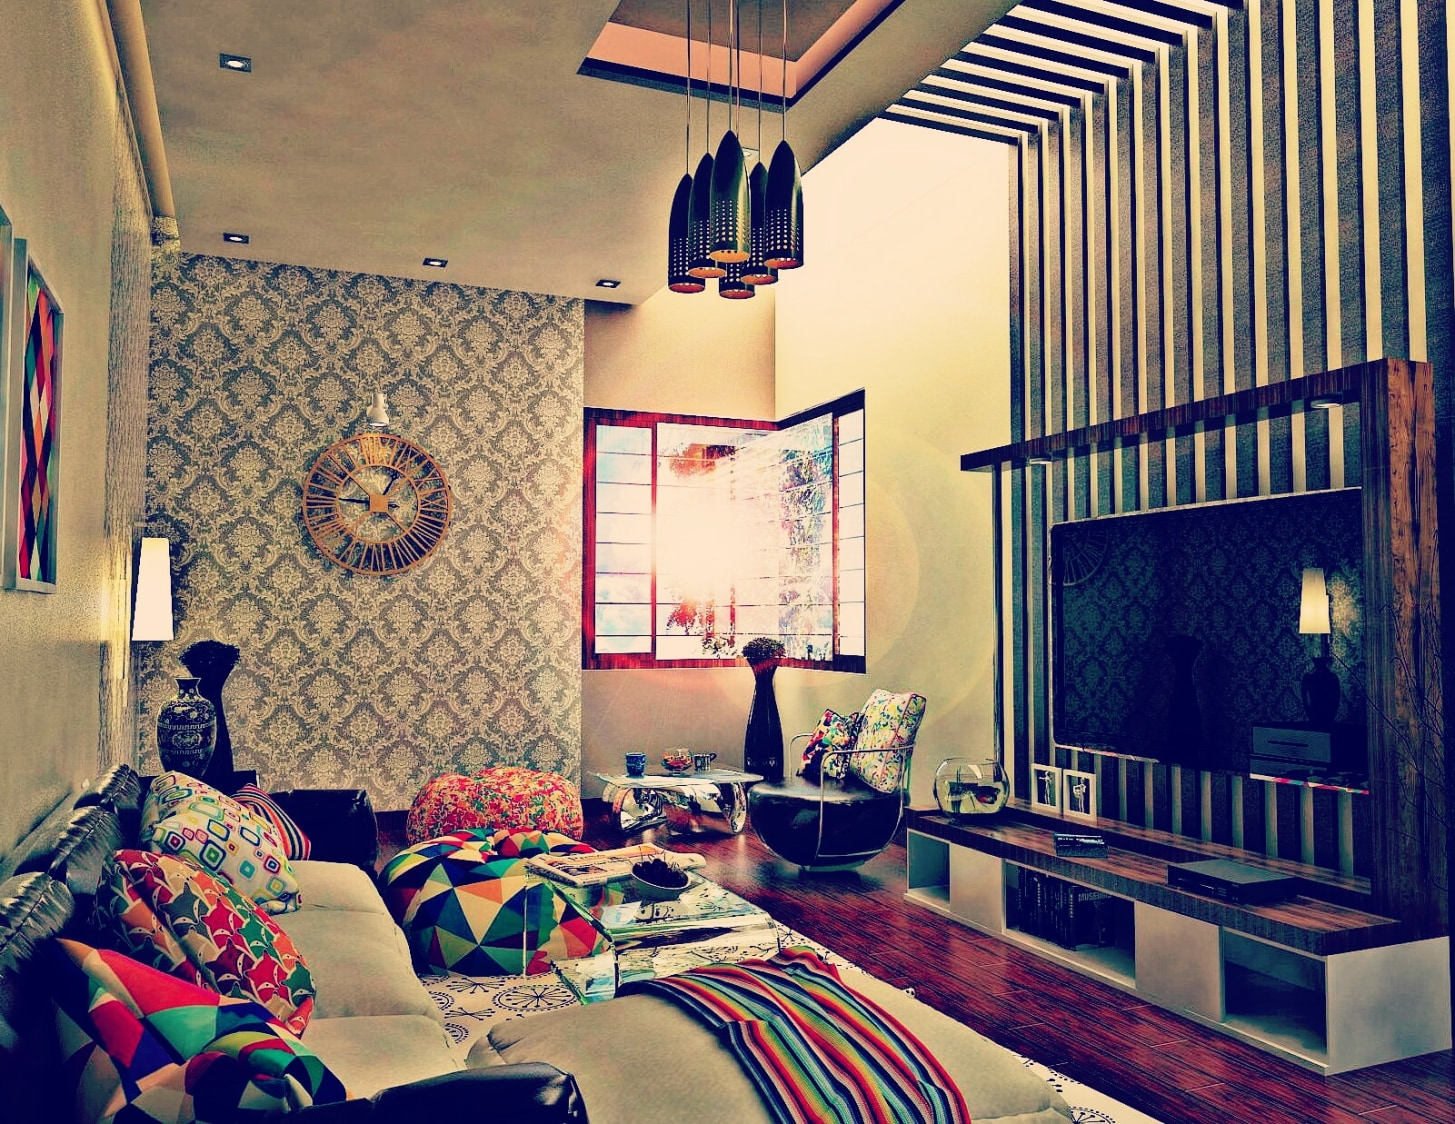 Joyous Living Room by Sachin Kulshreshtha